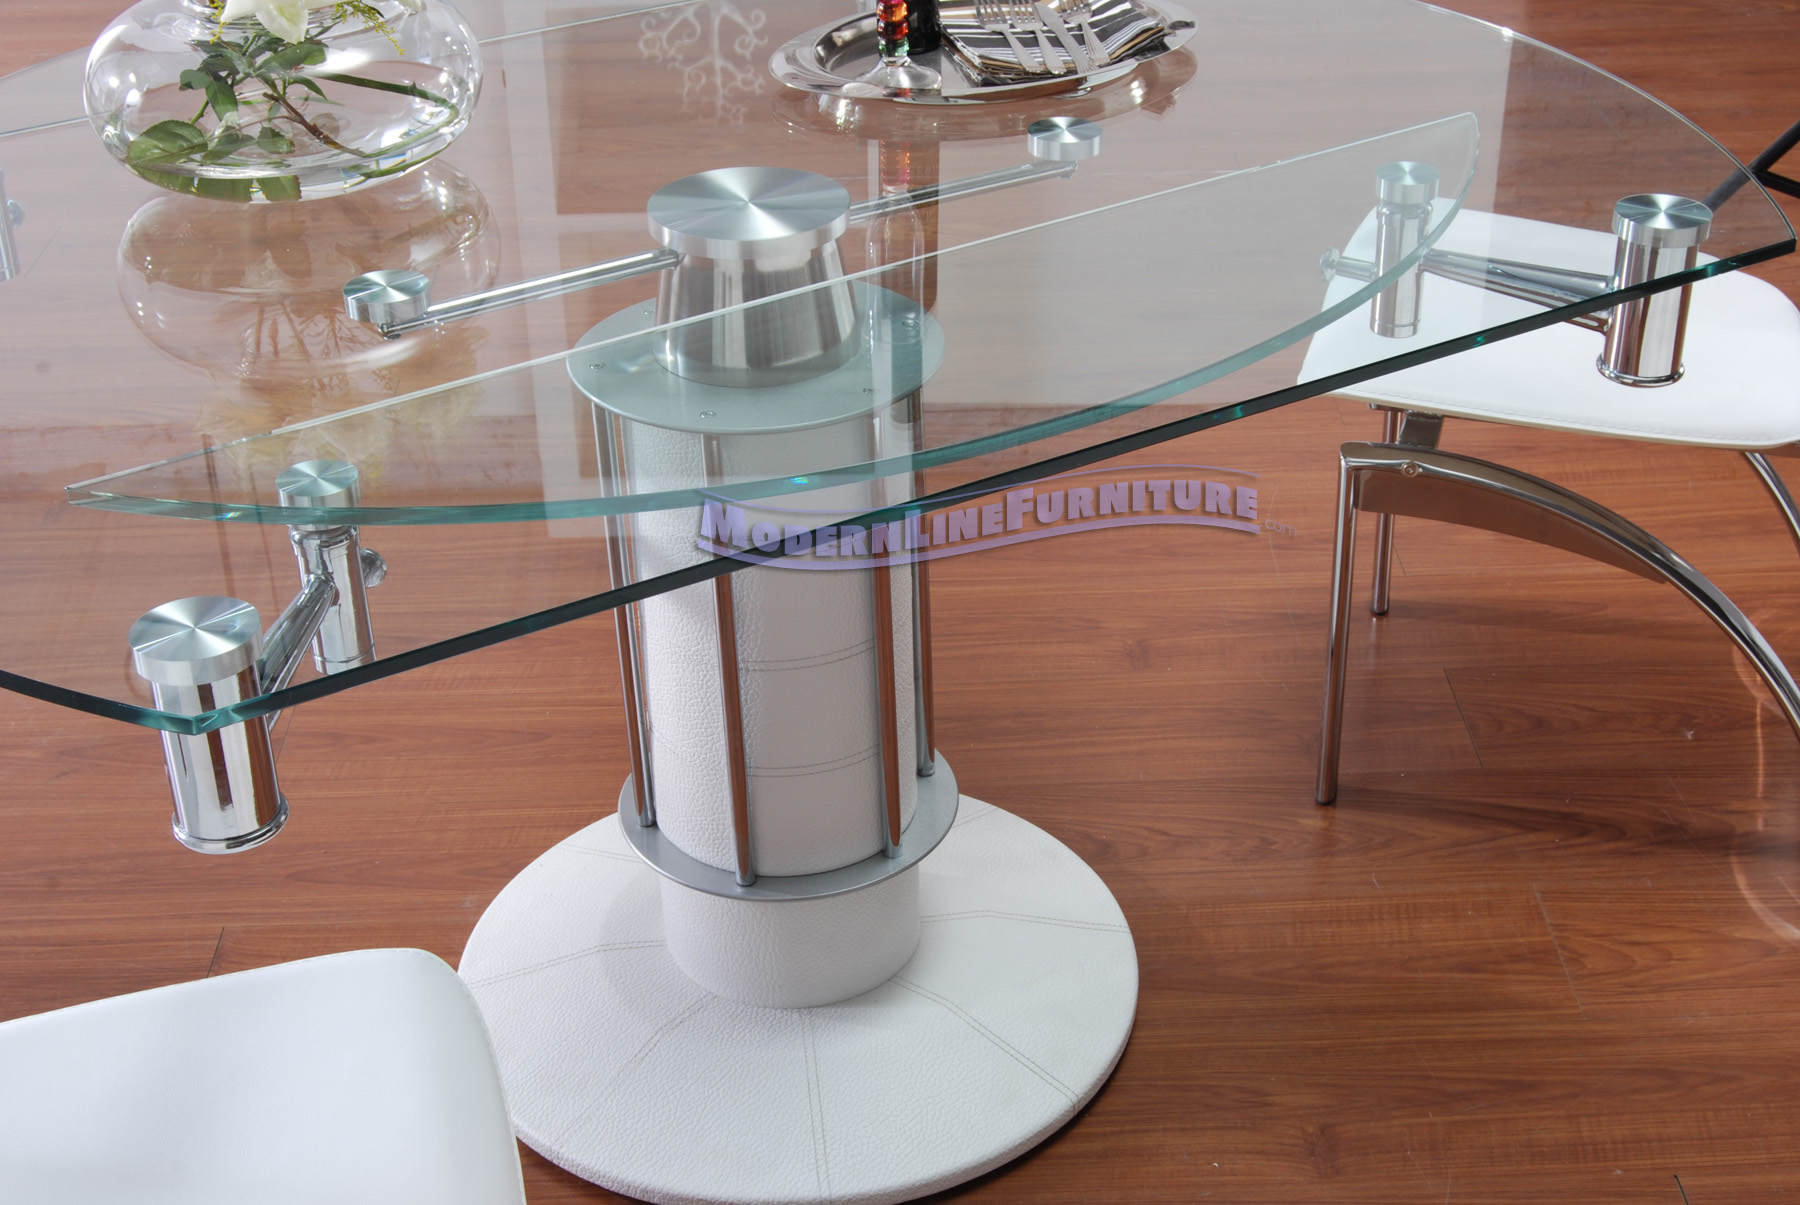 expandable dining table set with glass table and metal legs for dining room furniture ideas